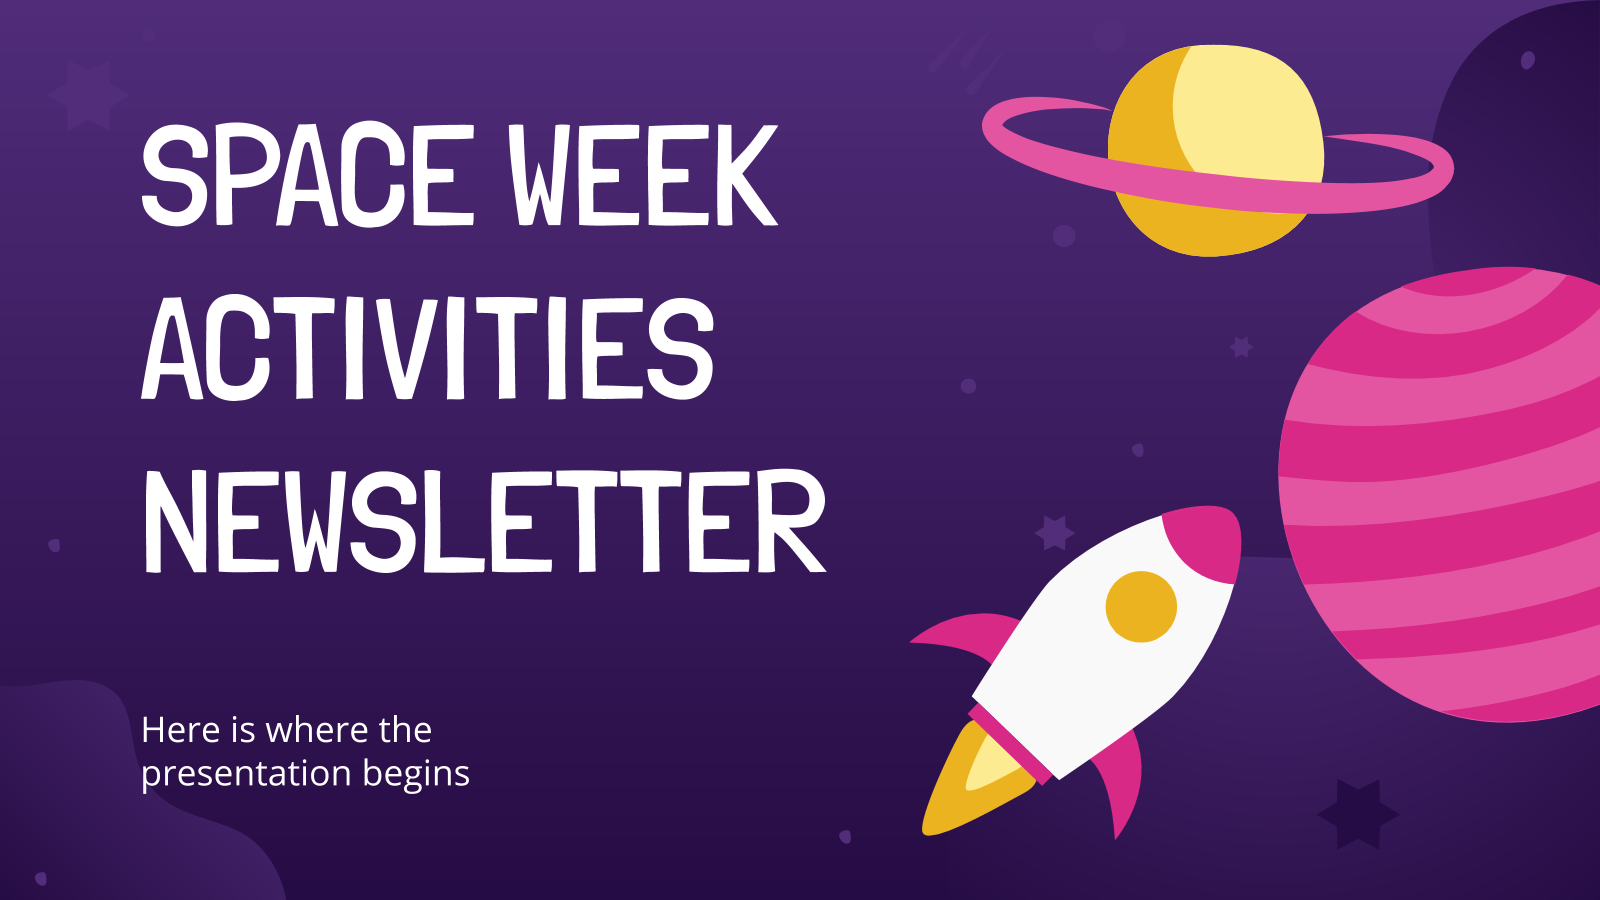 Space Week Activities Newsletter presentation template